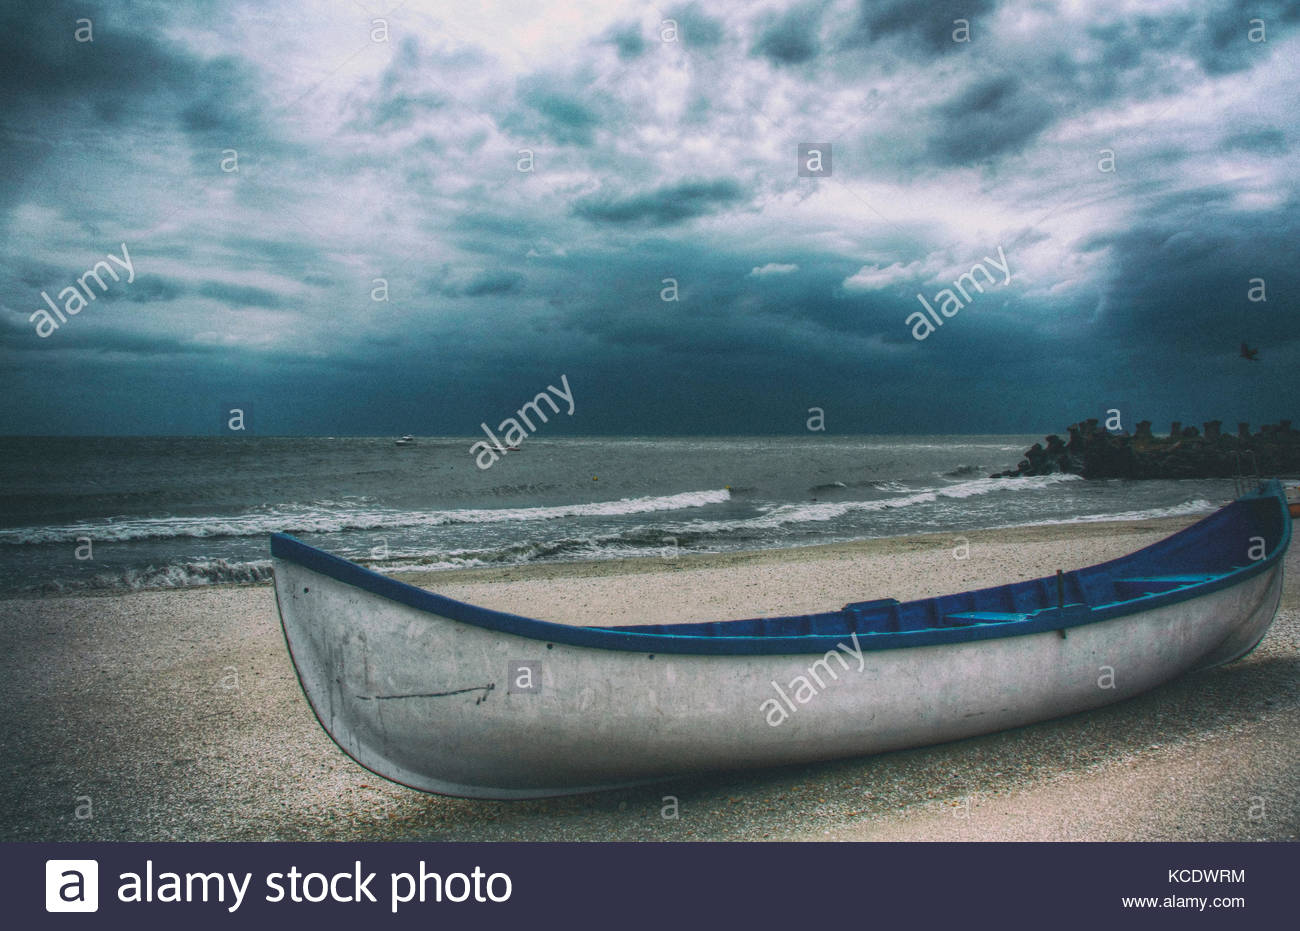 A blue and white rowing boat on the beach next to the sea. The sky is dark and covered in clouds - Stock Image